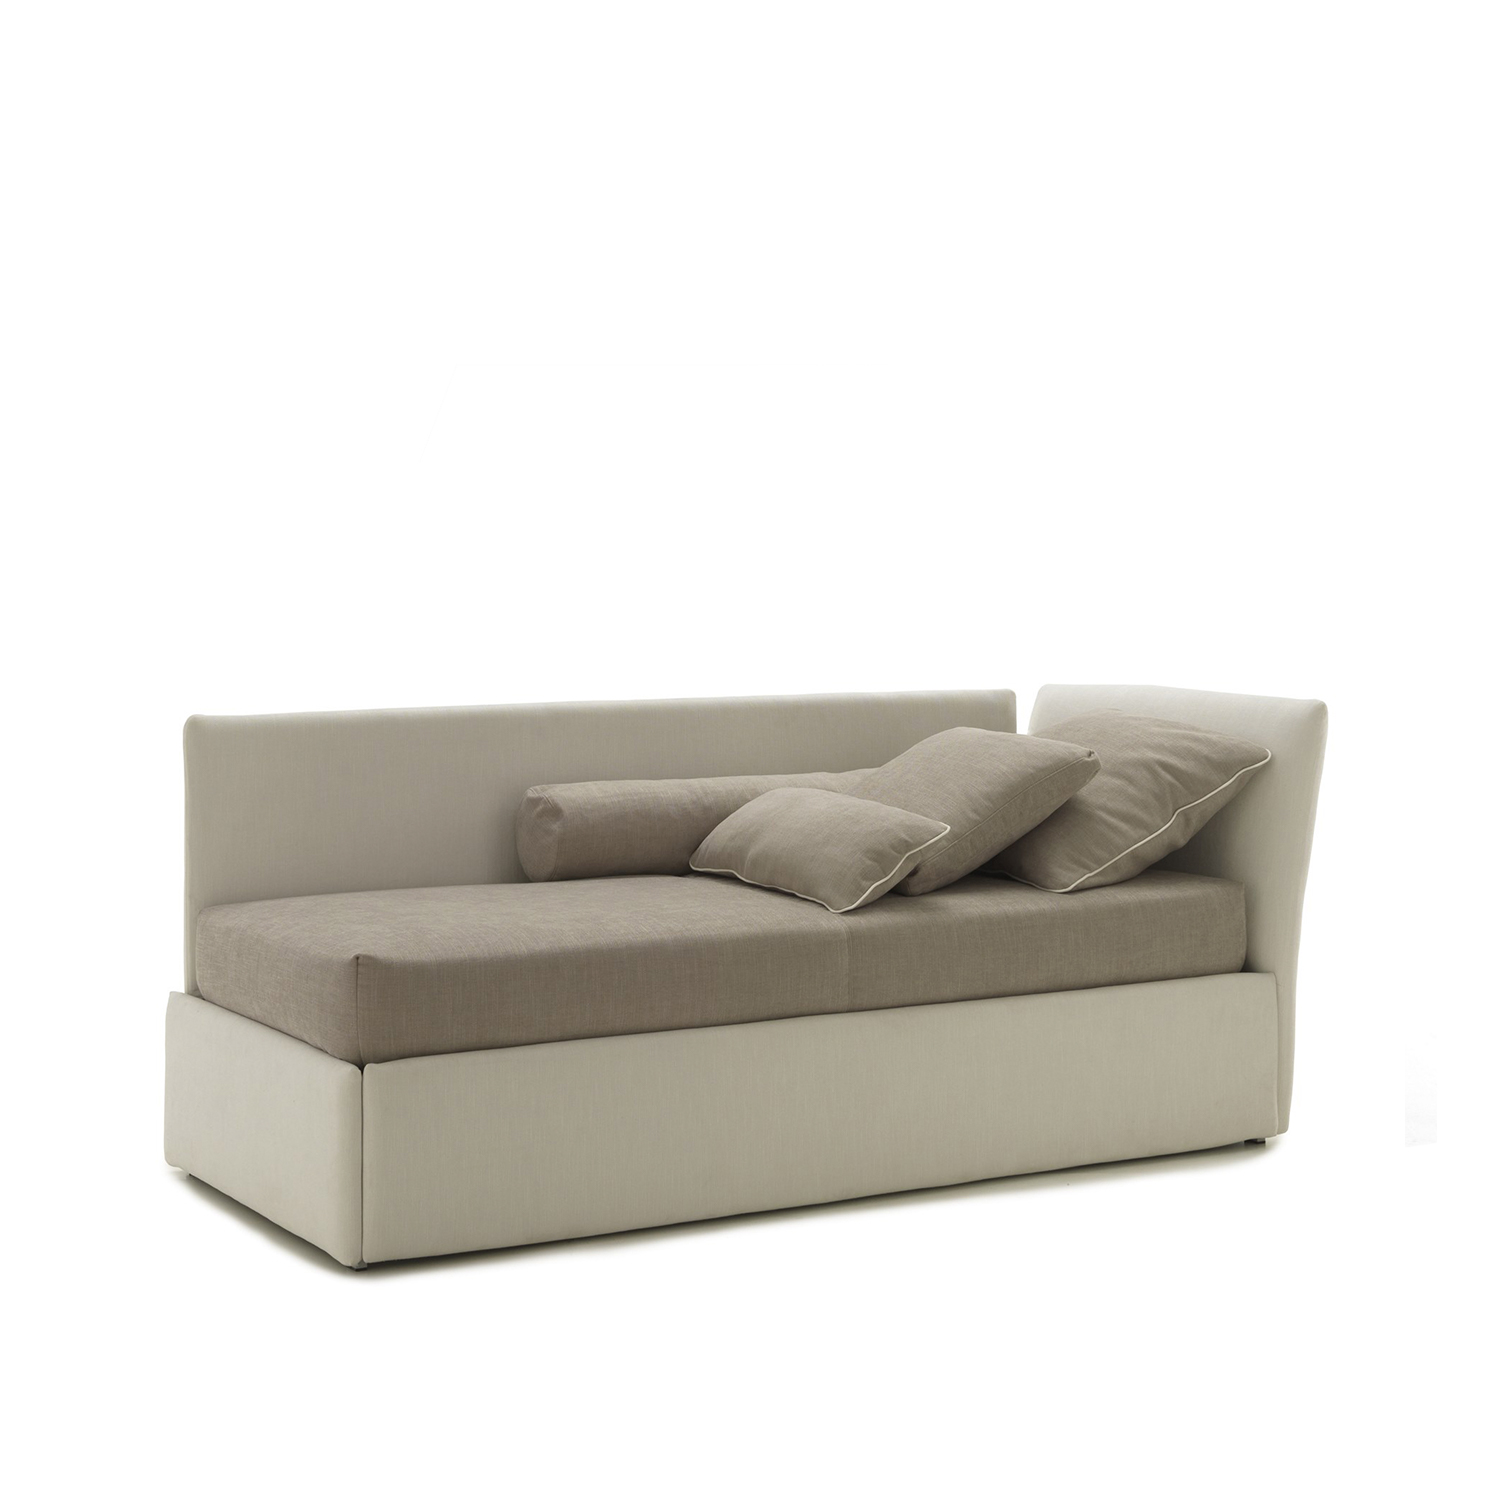 Biba Sofa bed - The Biba Program of single, with its soft and upholstered lines together its clear and essential design, is a classic and trendy bed at the same time and offers many ideas for furnishing children's bedroom or also a space of the house where a sofa bed is needed.‎